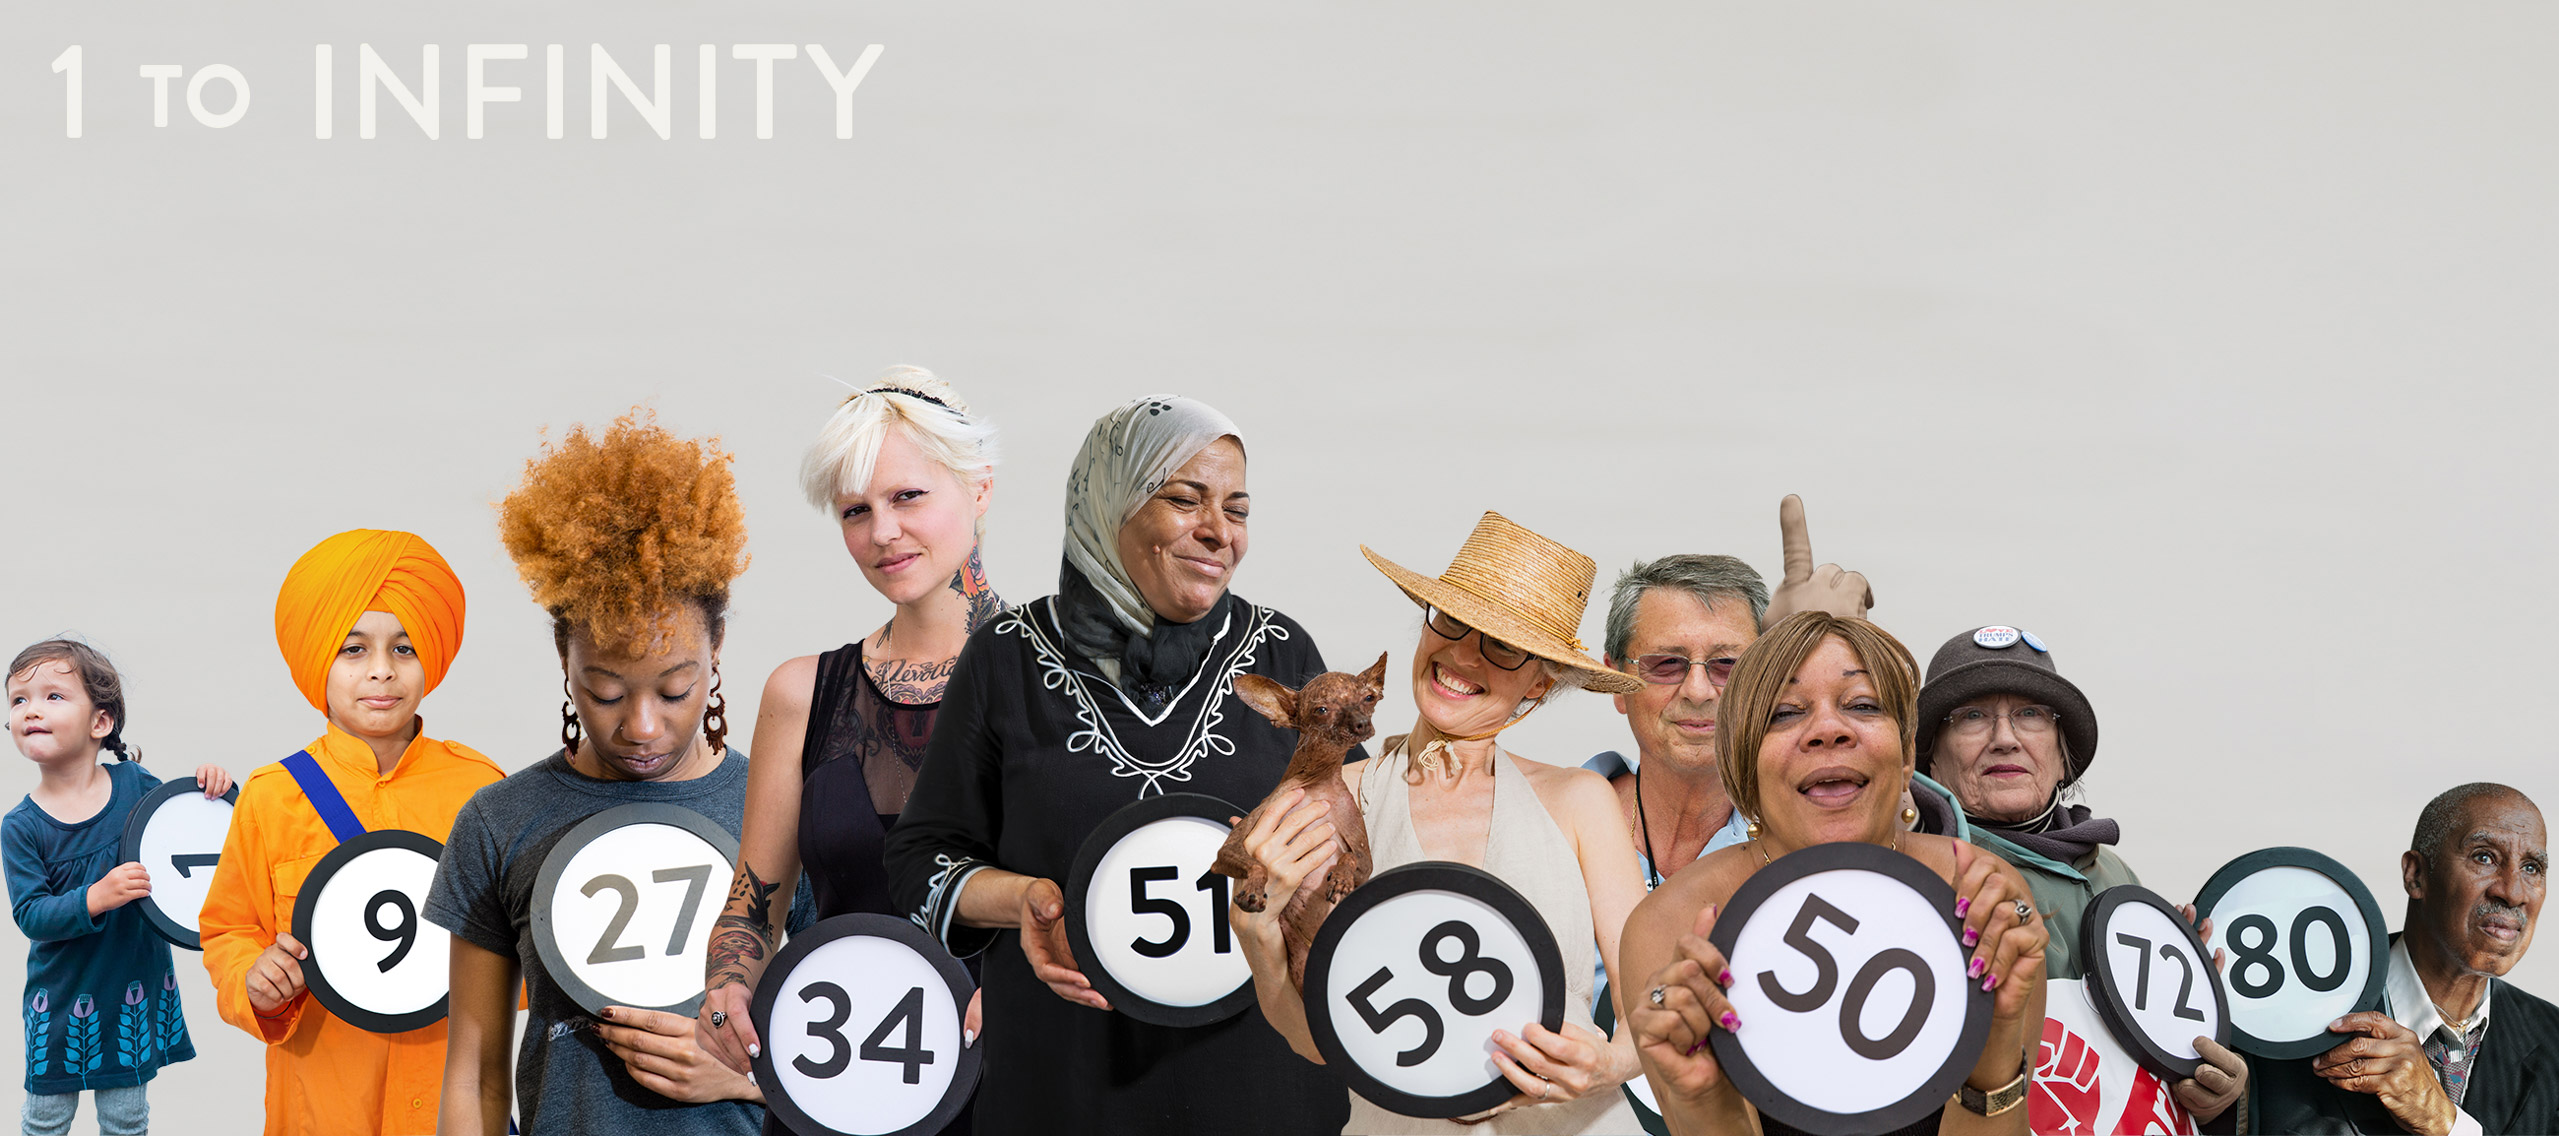 10 people whose ages span from 2 to 80 years old stanidng together with tokems in their hands that have their age on them. 1 to Infinity title in black bold letters across the top. In the upper right corner is a black push button.